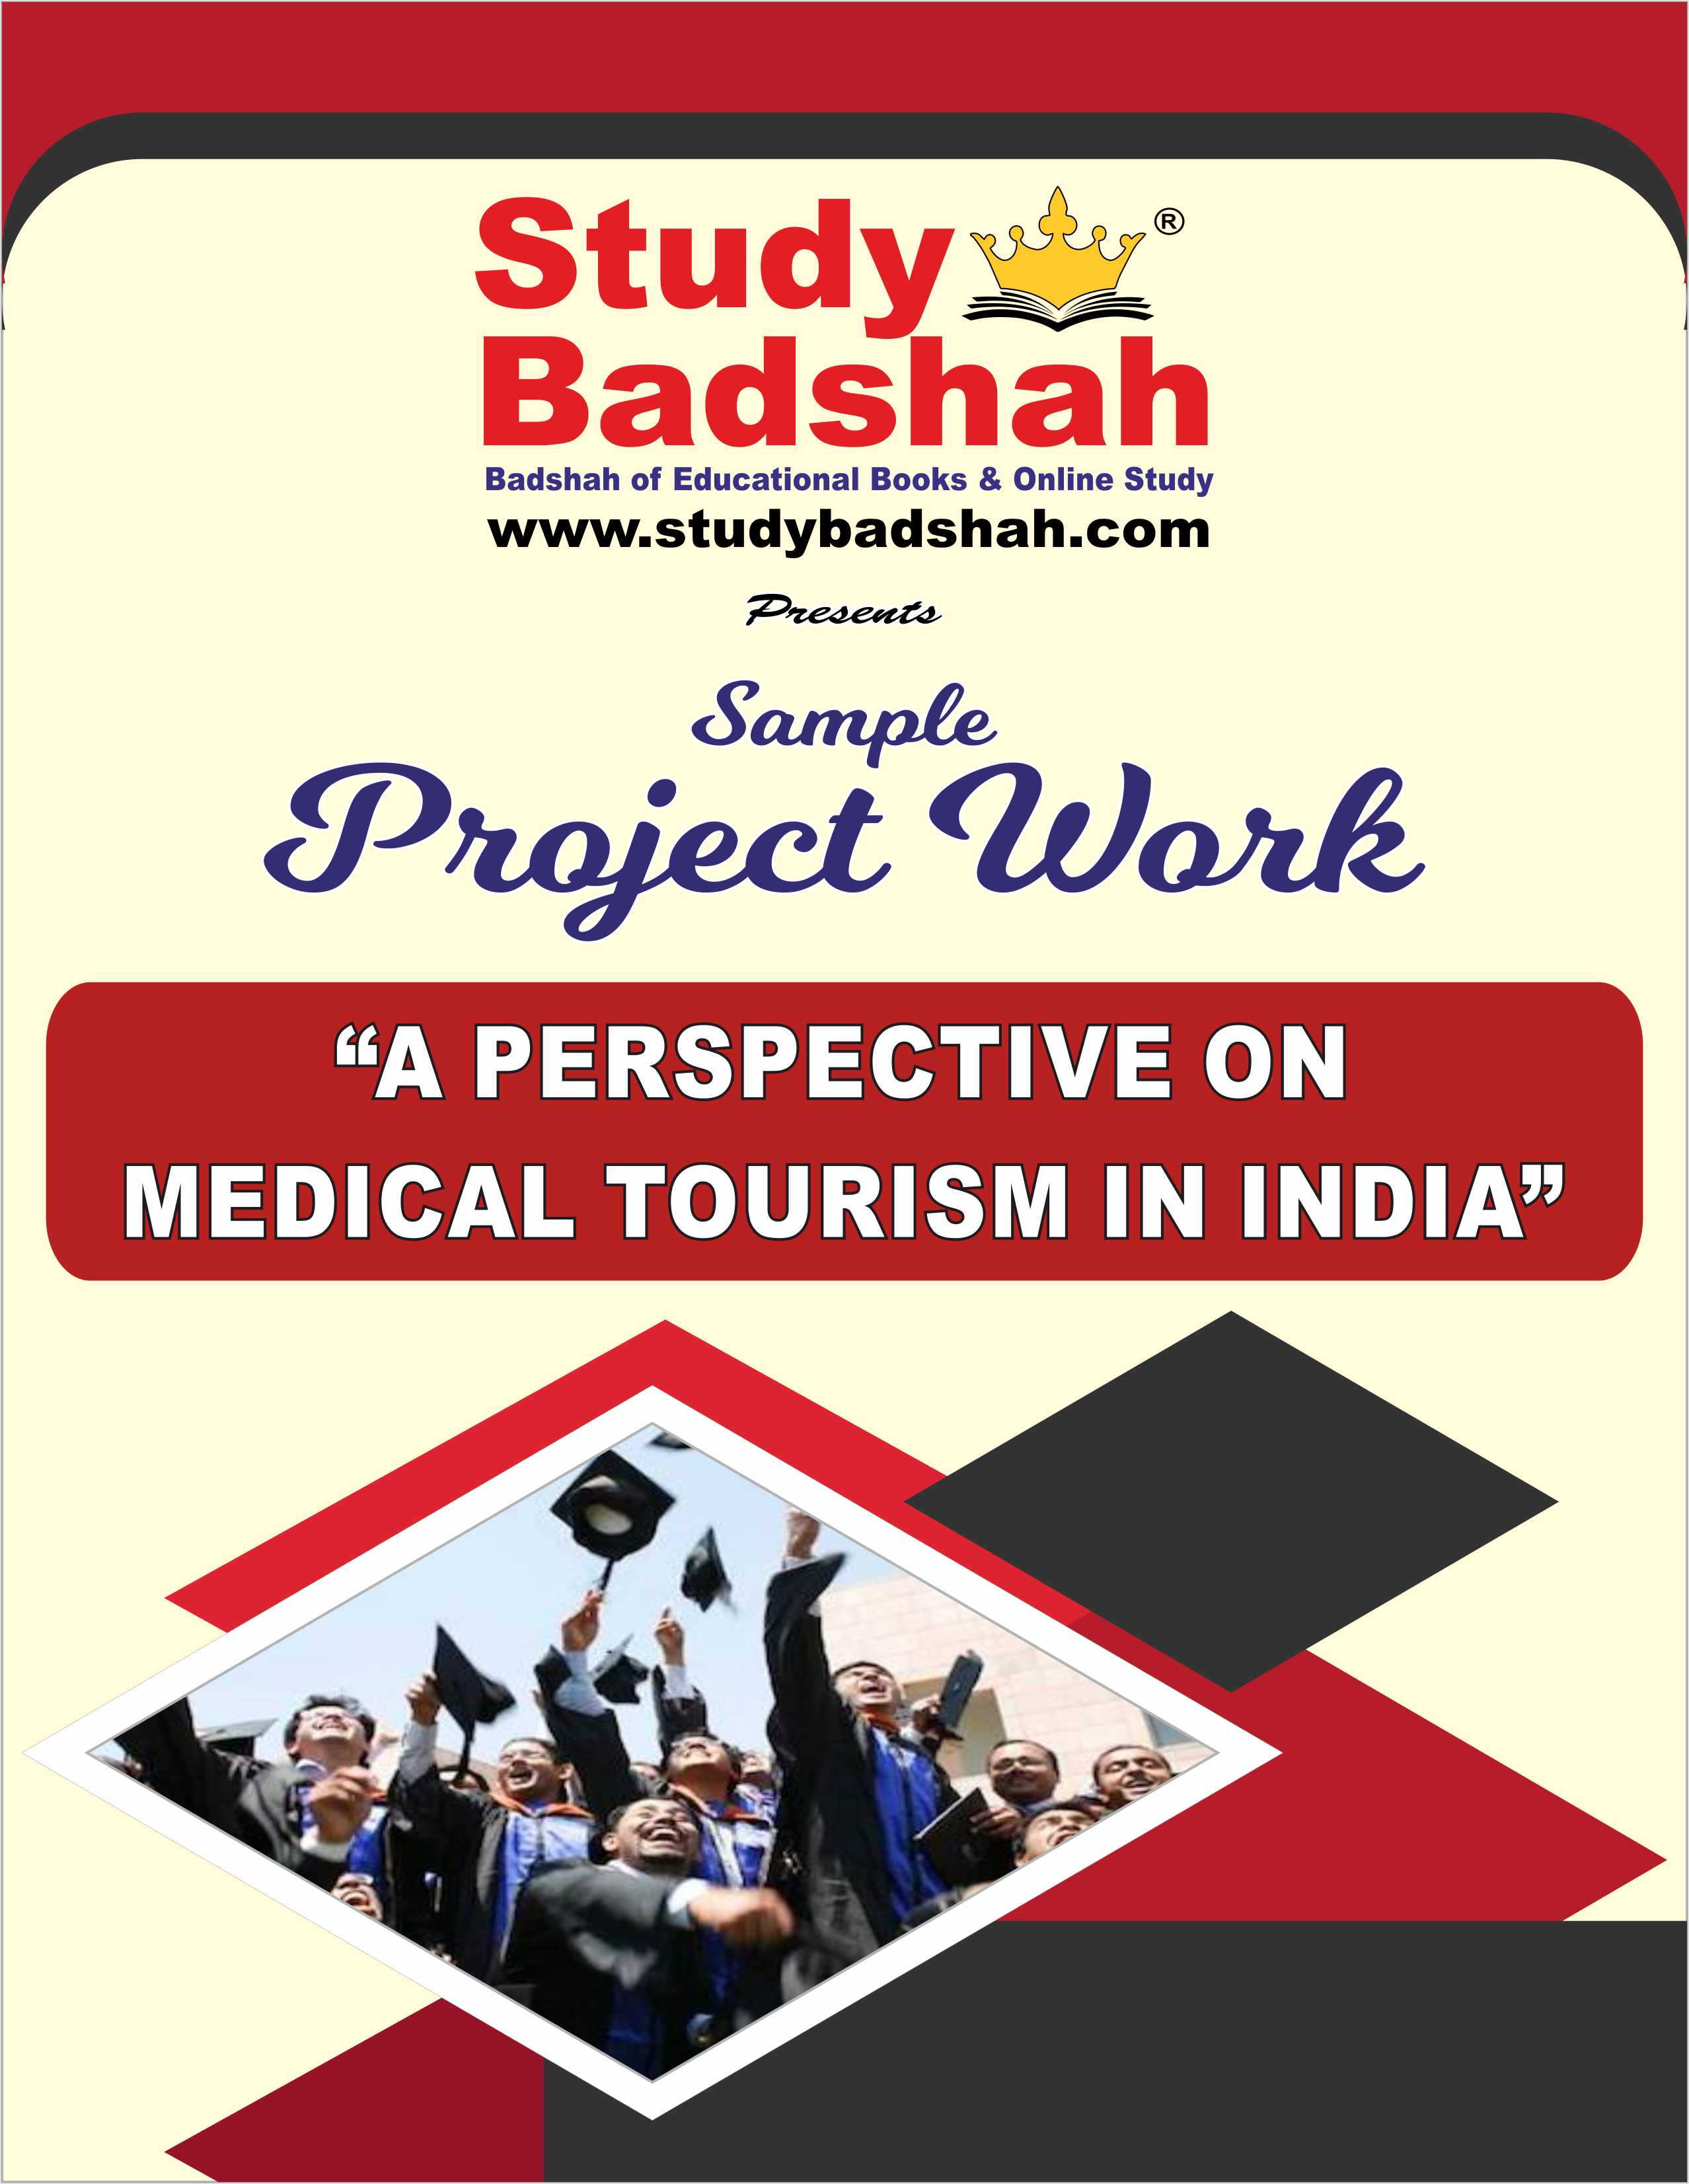 A PERSPECTIVE ON MEDICAL TOURISM IN INDIA